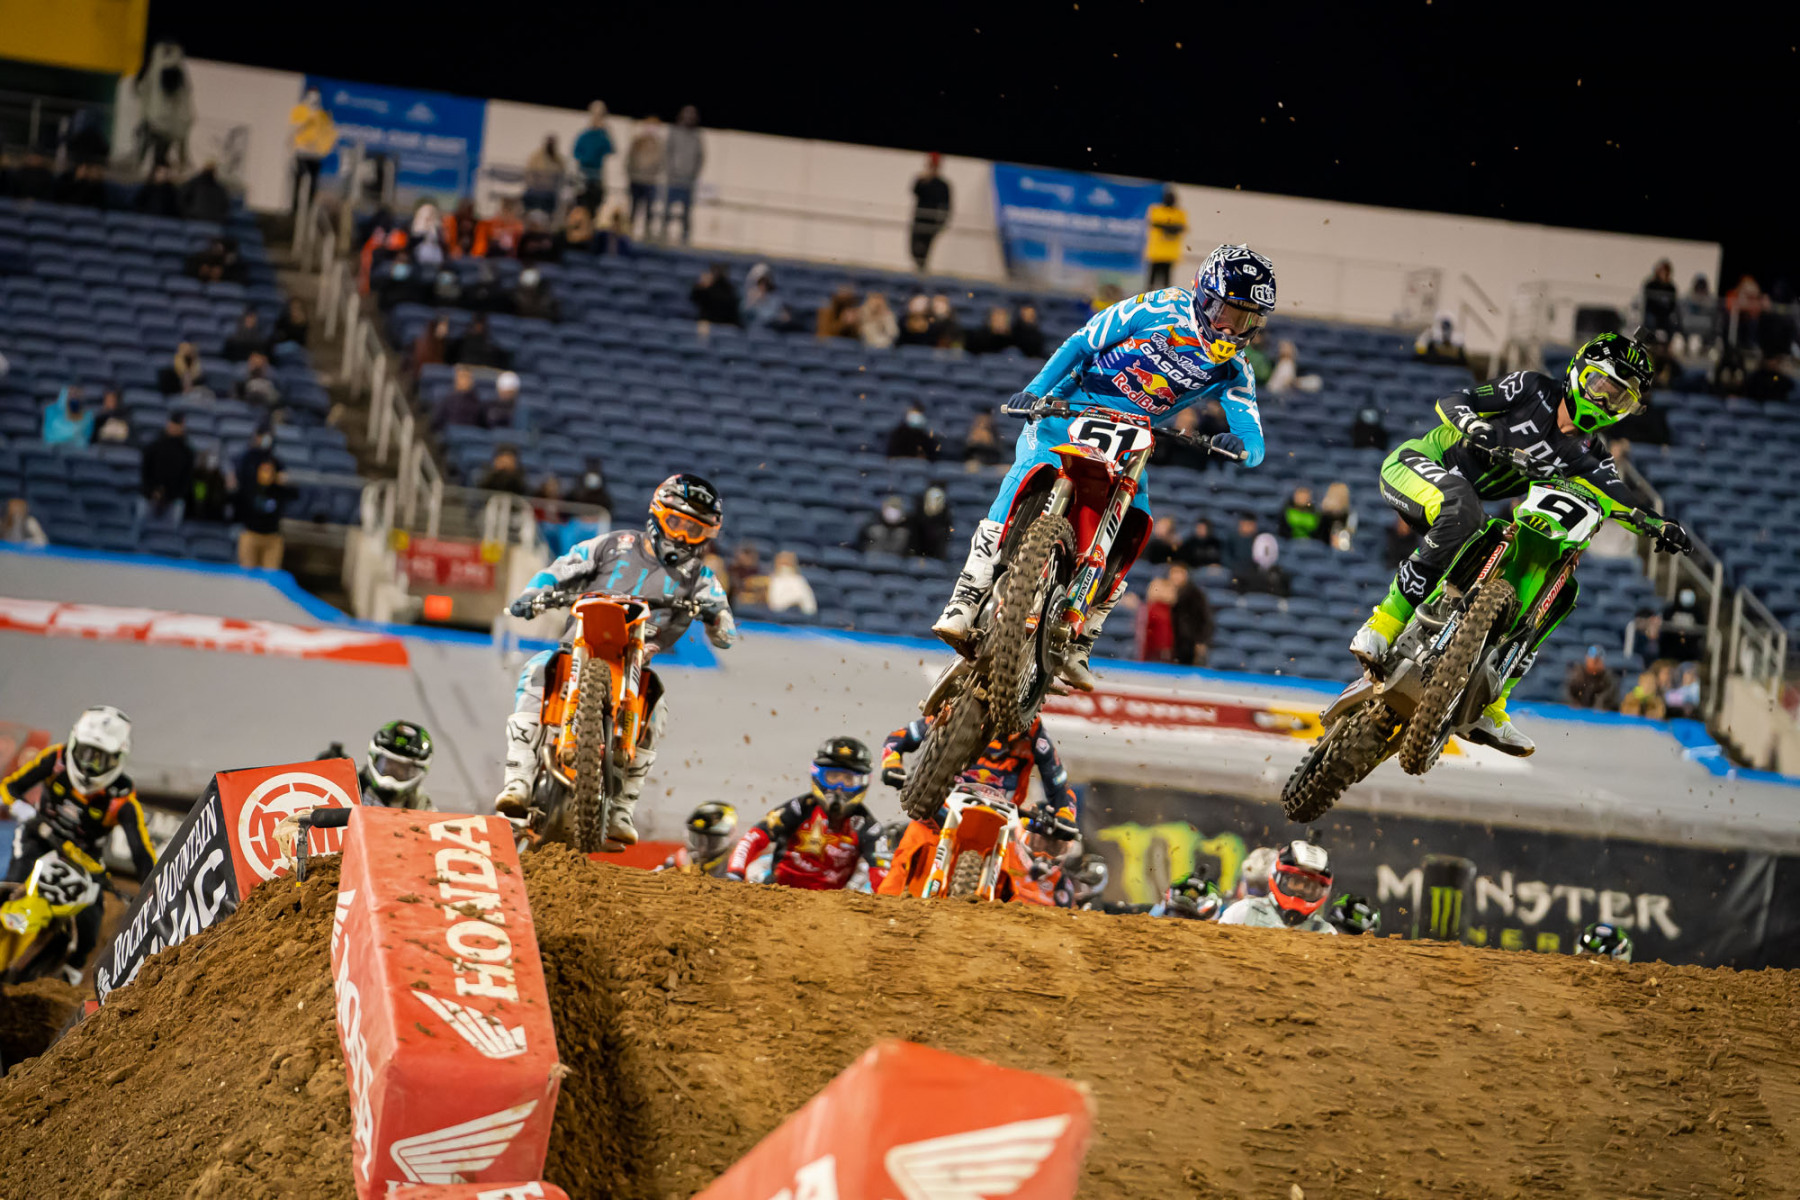 2021-ORLANDO-TWO-SUPERCROSS_KICKSTART_1556